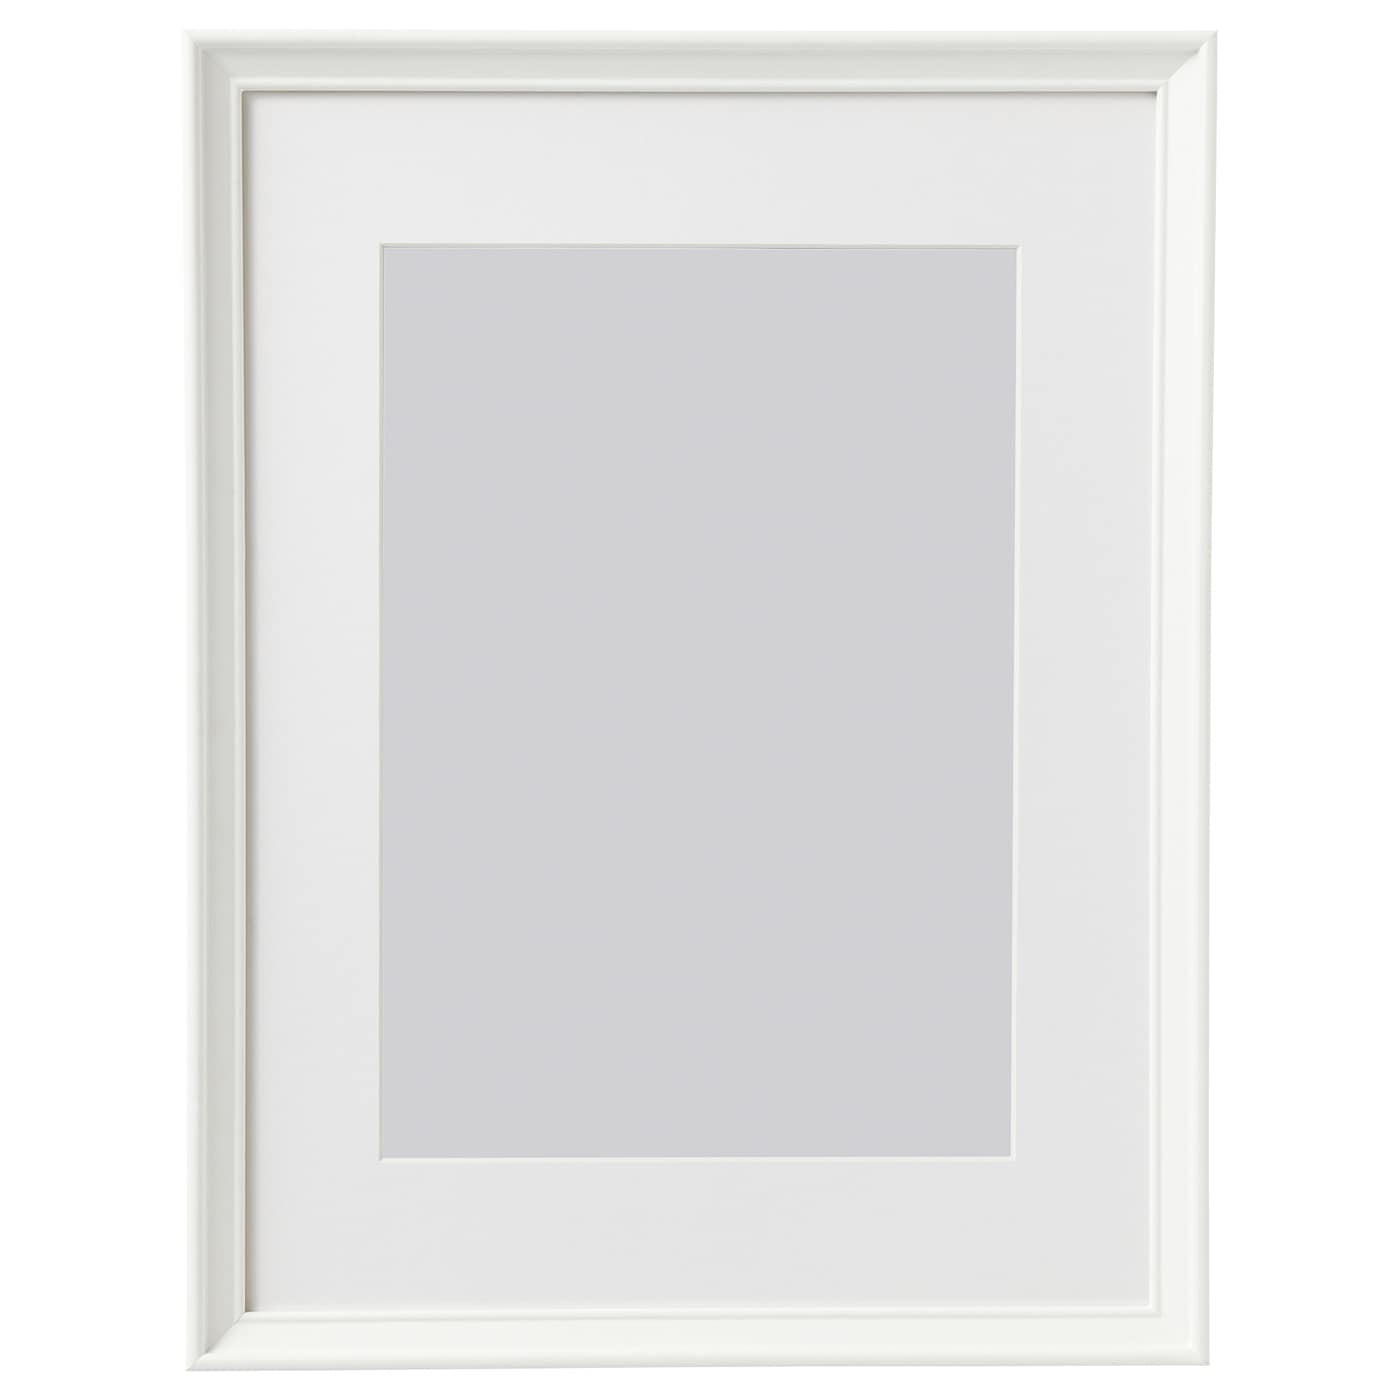 Posters picture frames for sale cheap ikea